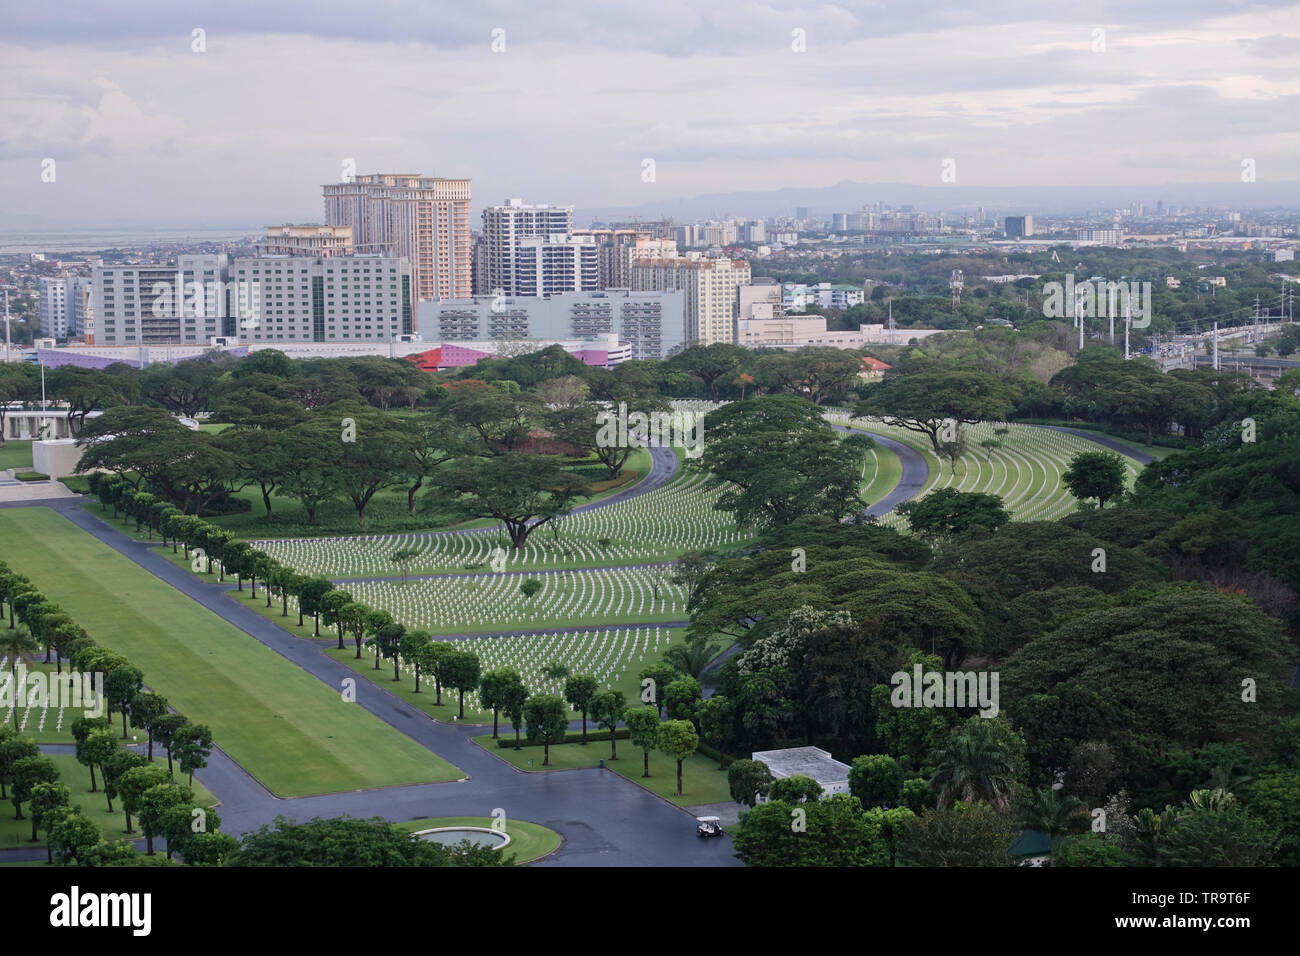 A view of the Manila America Cemetery and Memorial  and further off the city of Pasig across the river from a Bonifacio Global City condominium. - Stock Image